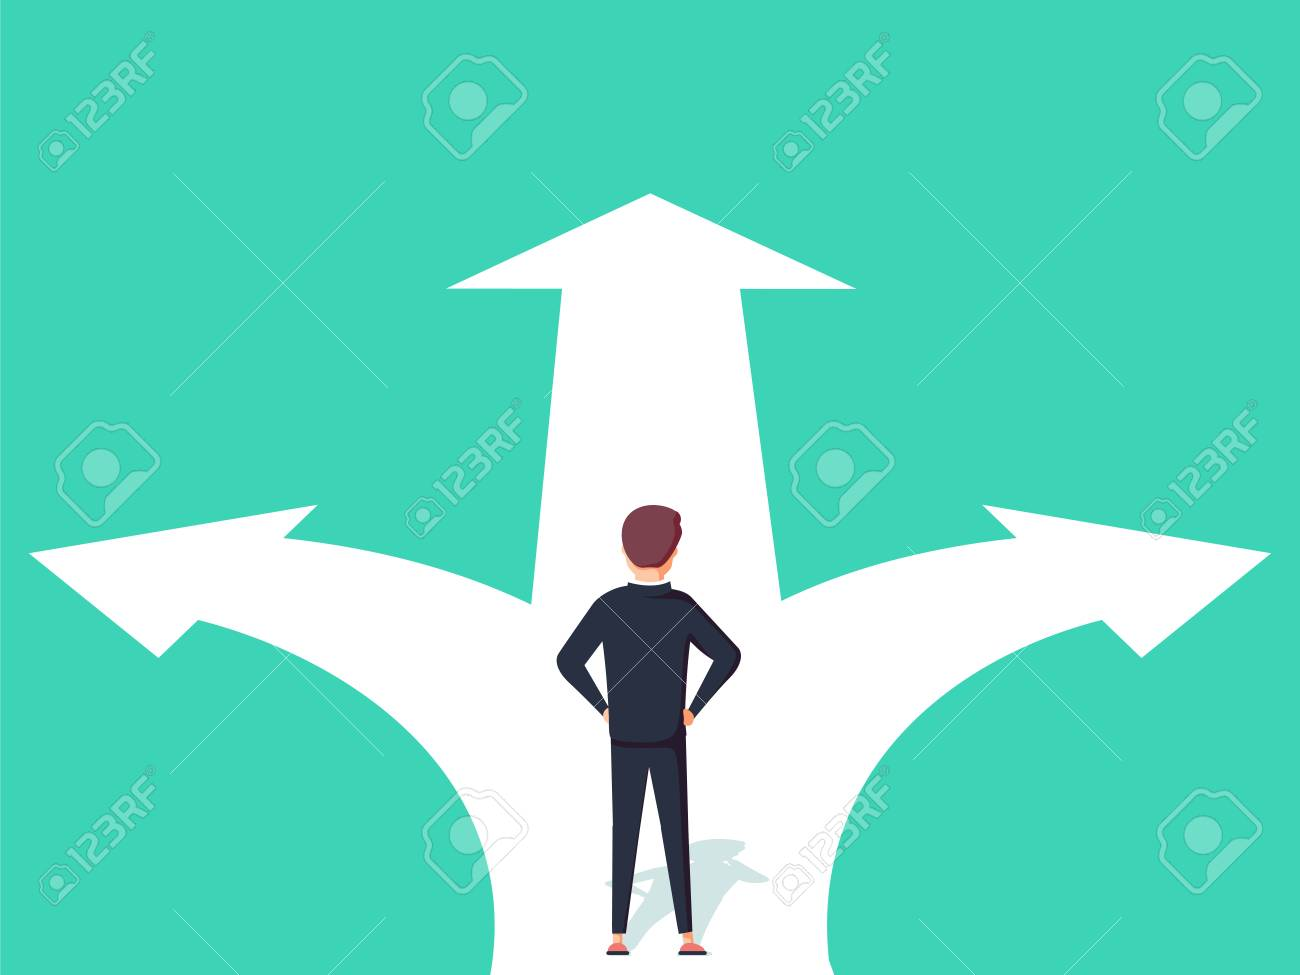 Business decision concept vector illustration. Businessman standing on the crossroads with two arrows and directions vector illustration. - 97934259